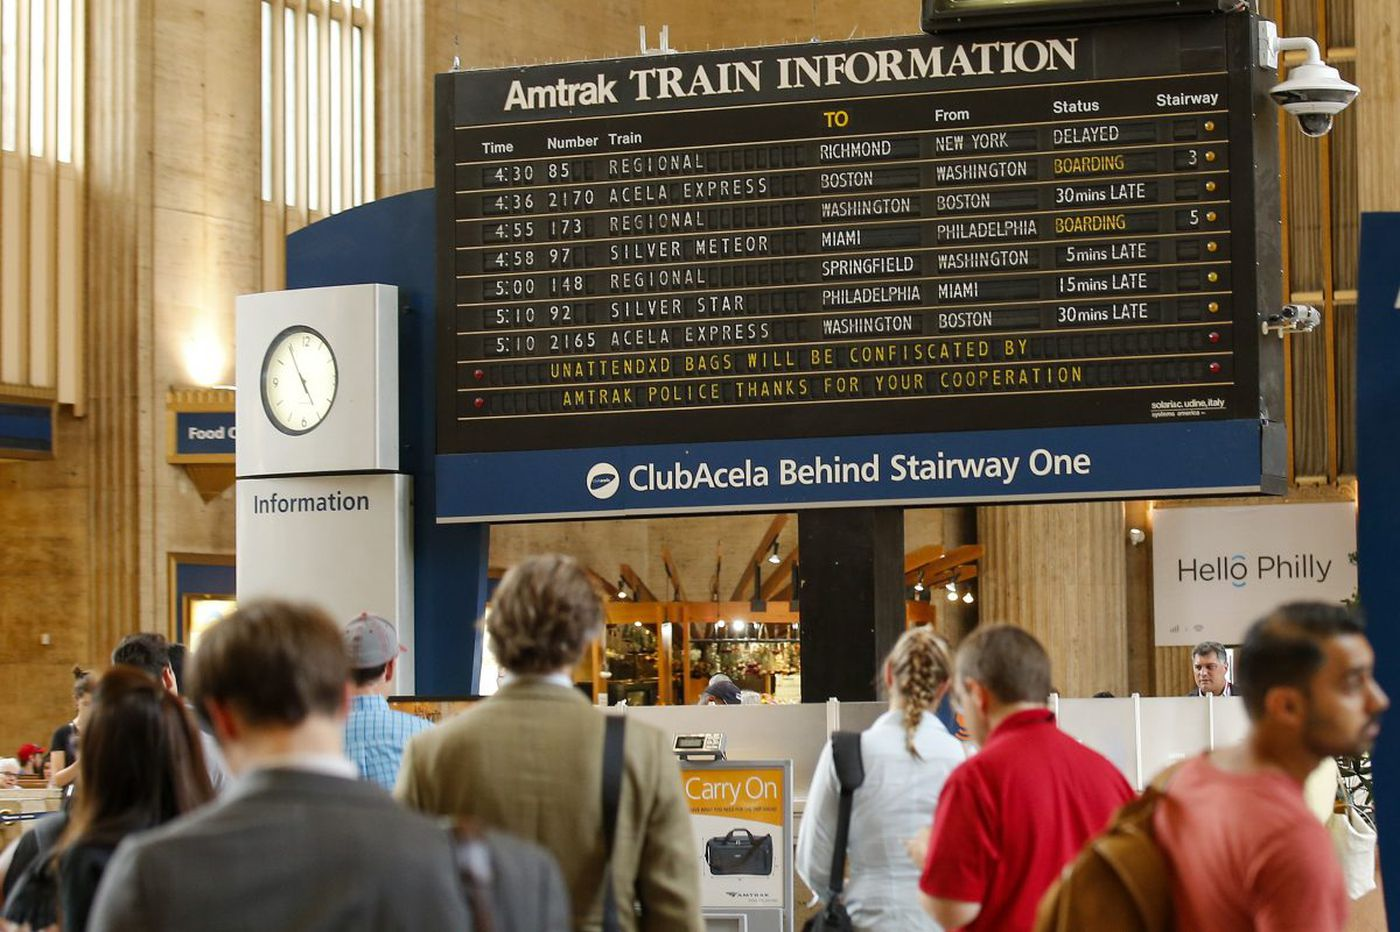 30th Street Station security failures pose risk to passengers, Amtrak finds